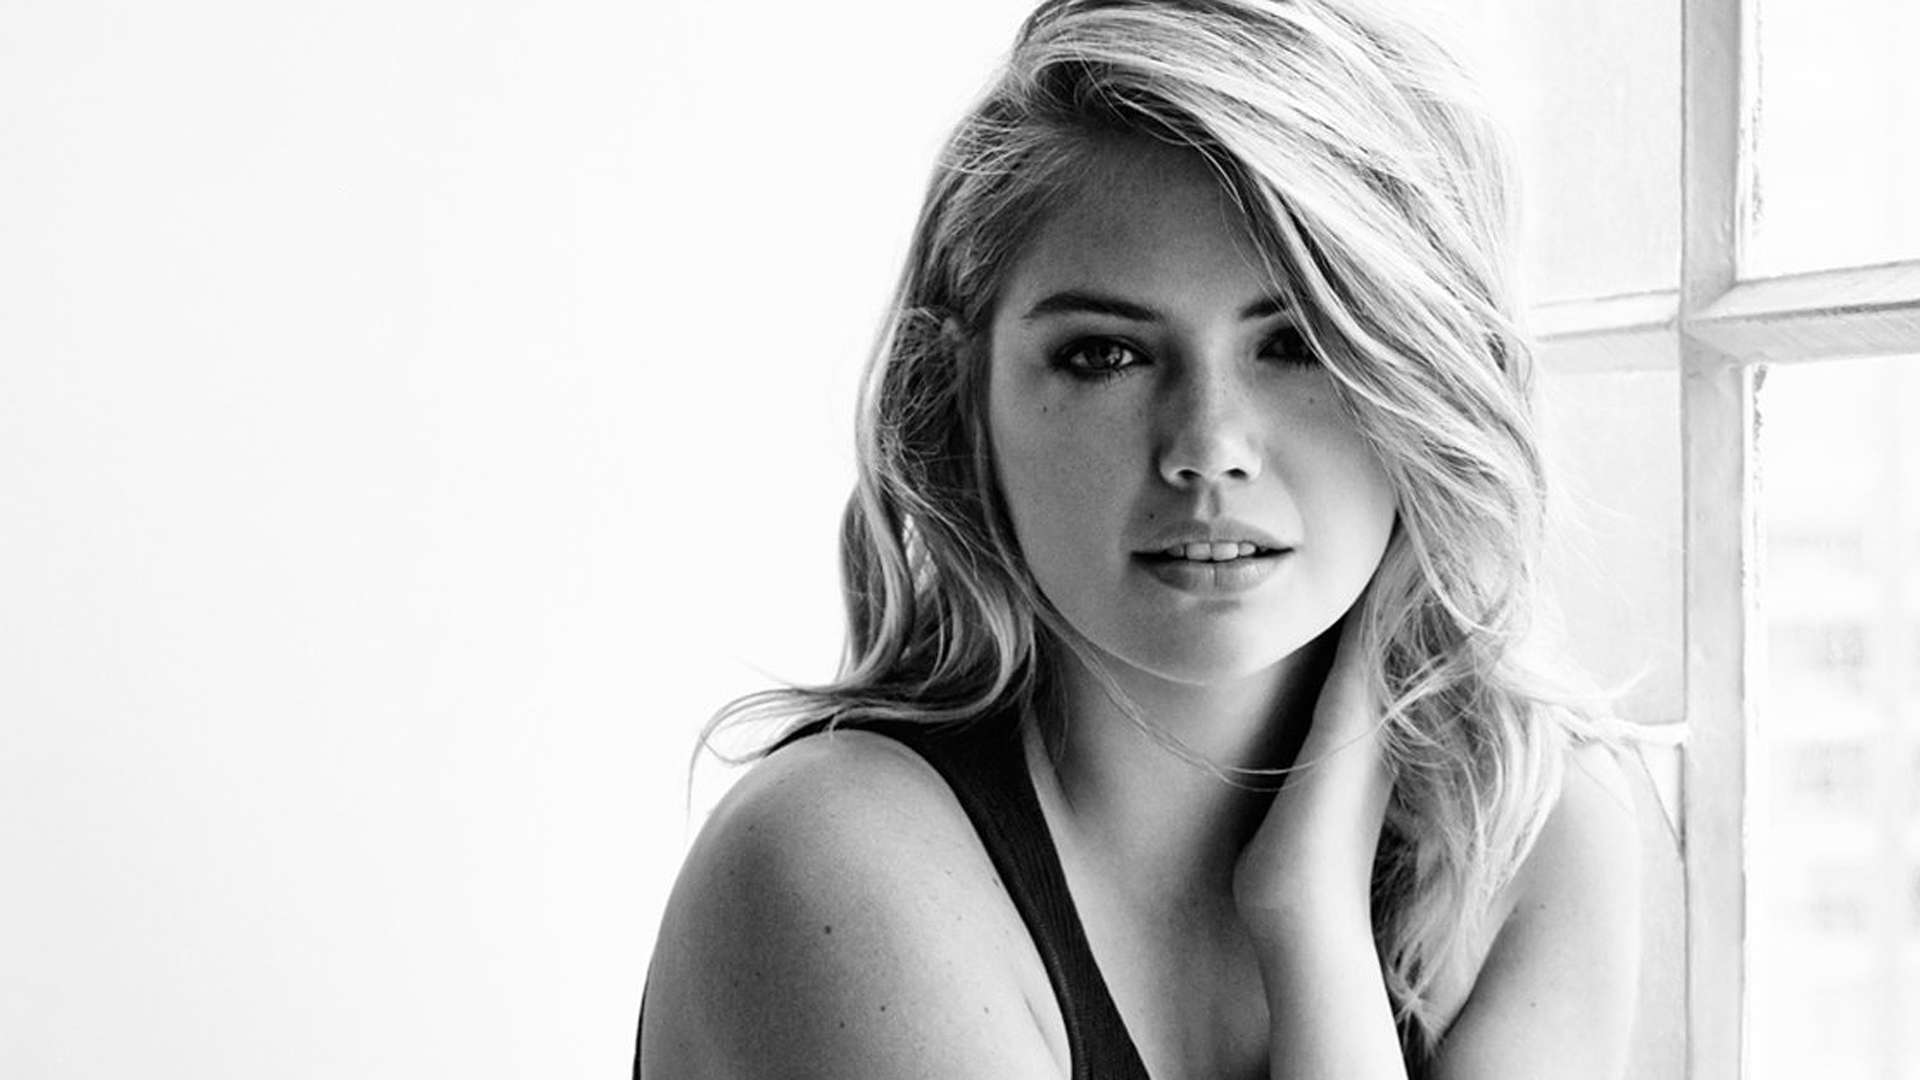 kate upton wallpapers with - photo #5